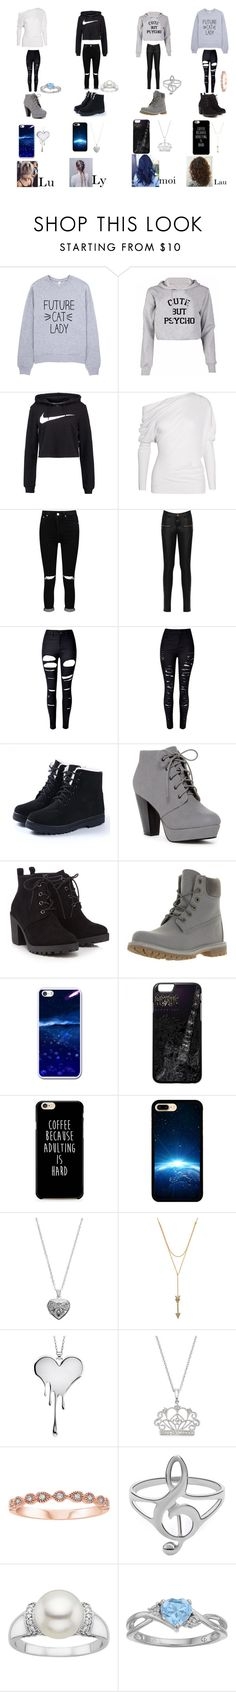 """4L"" by laura-la-licorne ❤ liked on Polyvore featuring NIKE, Tom Ford, Boohoo, WearAll, WithChic, Red Herring, Timberland, Silver Expressions by LArocks, Rebecca Minkoff and LUSASUL"